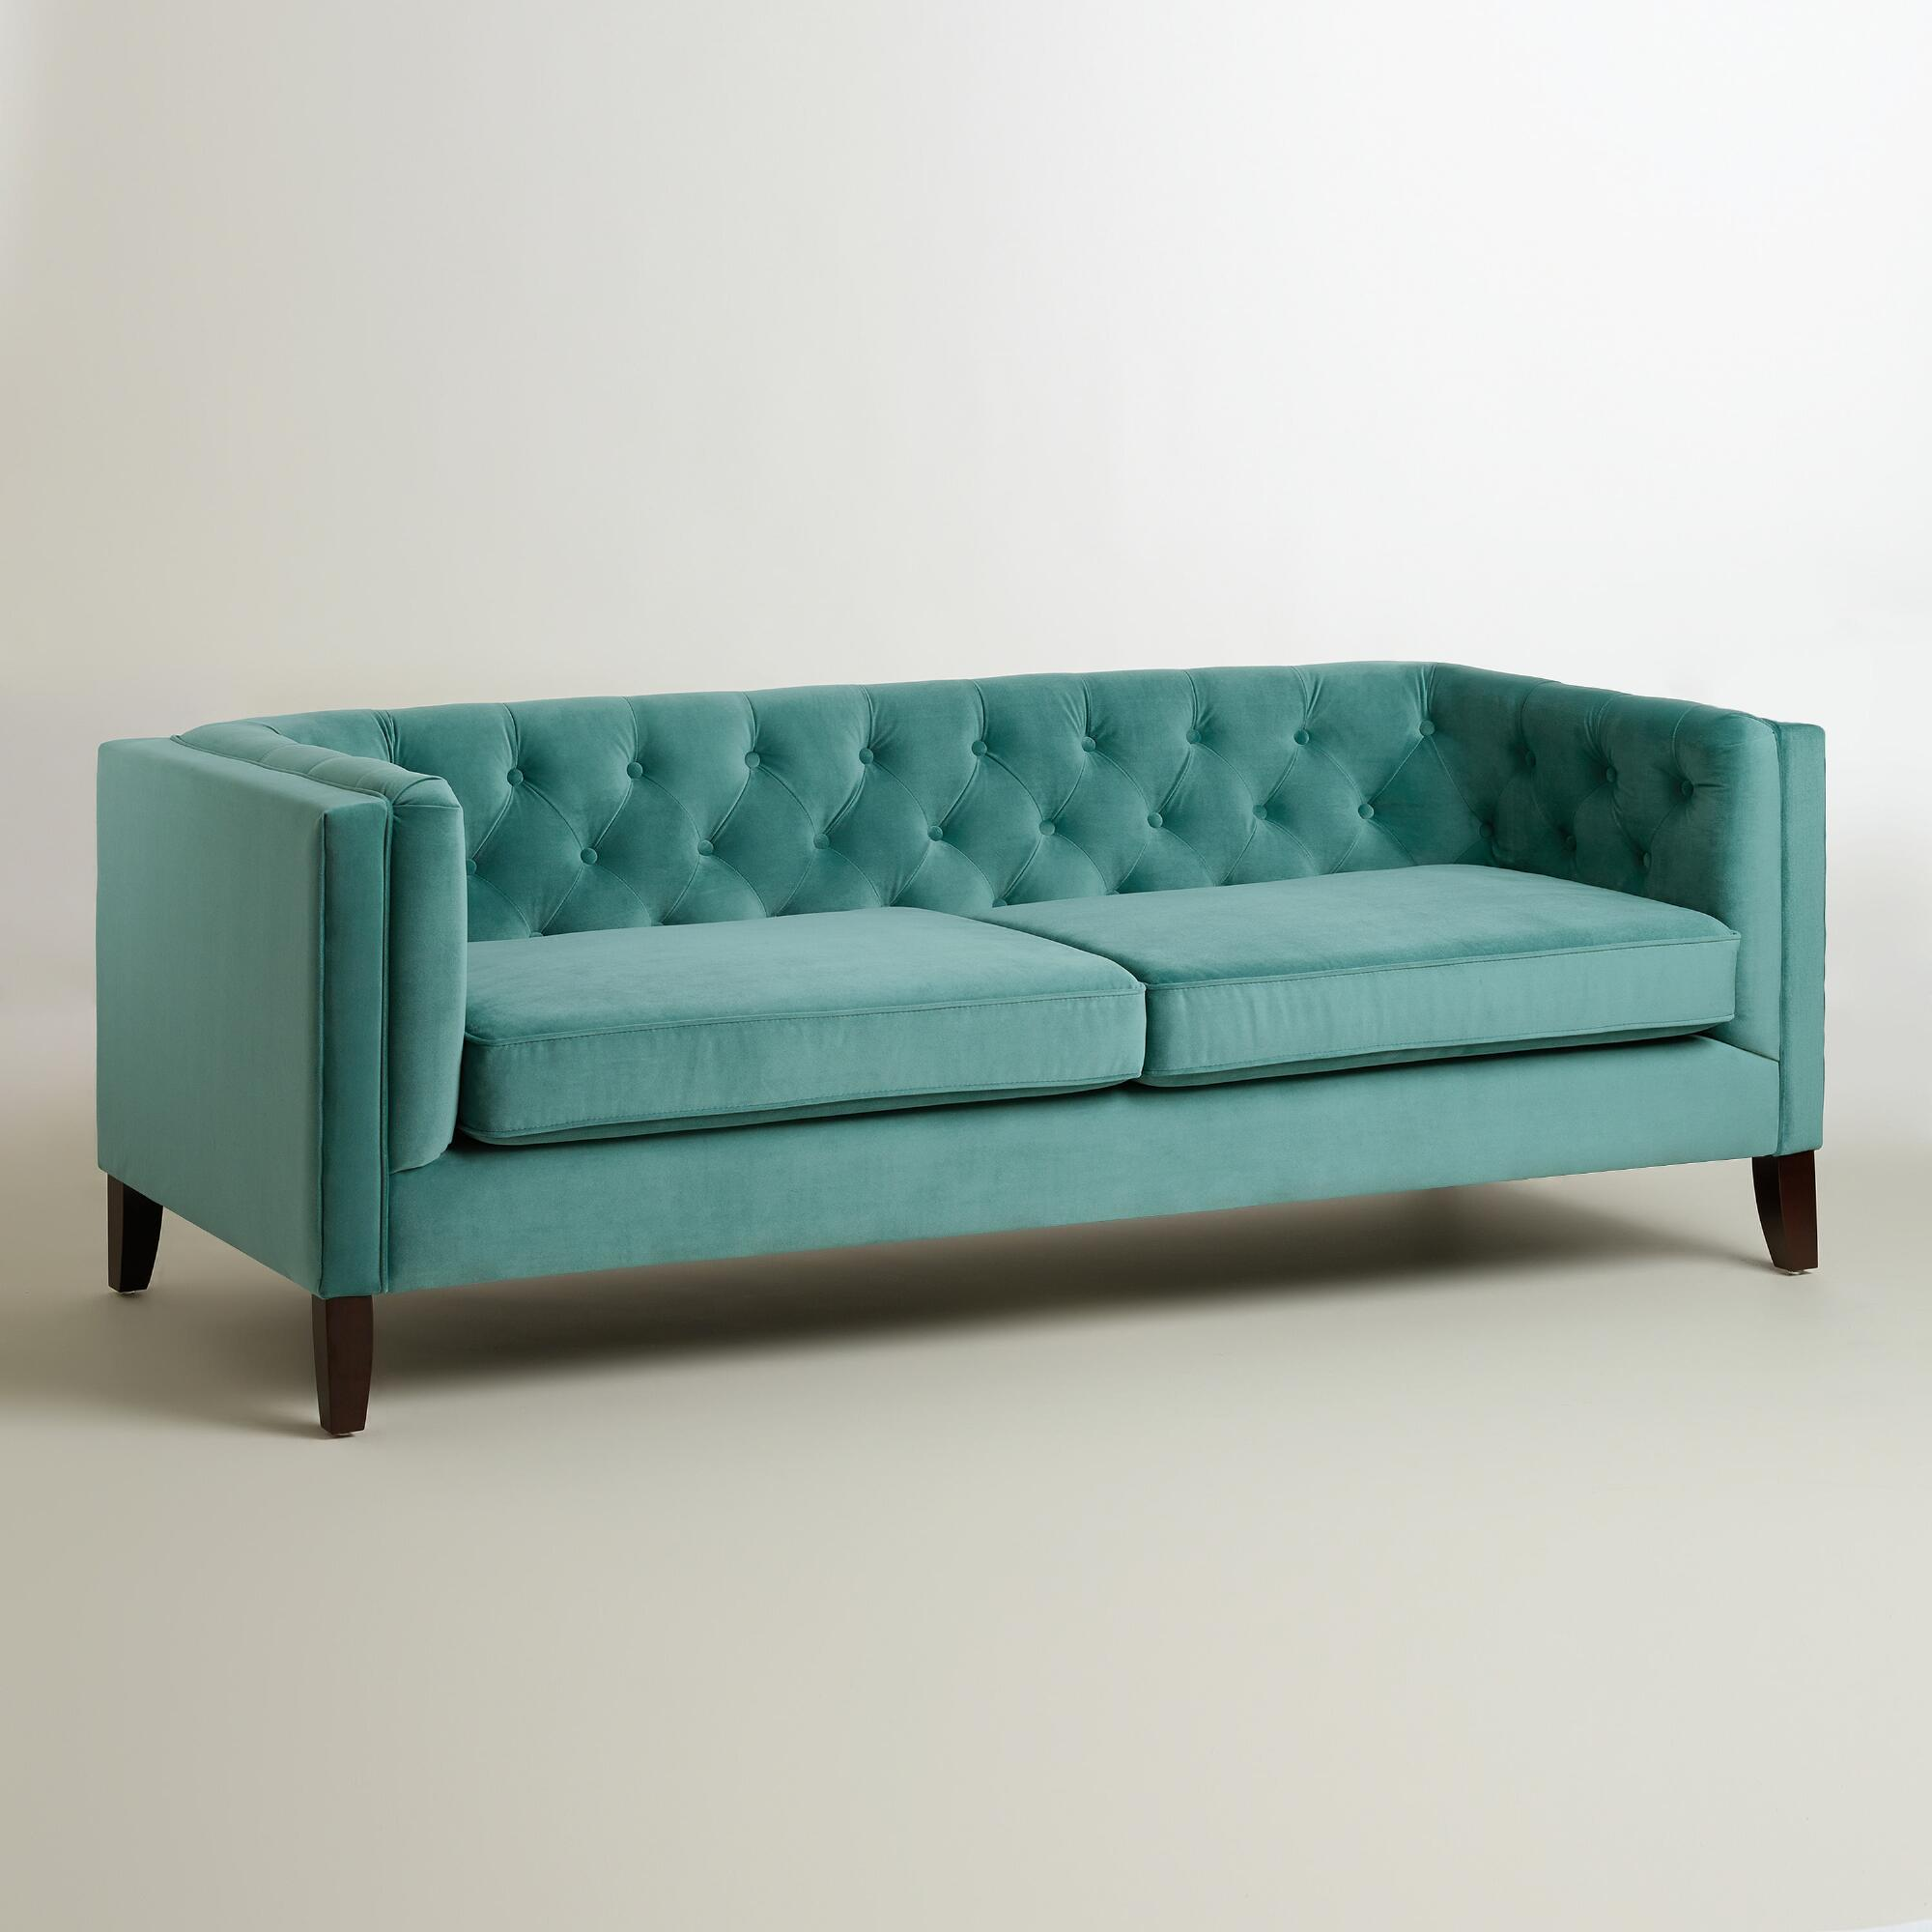 tufted turquoise sofa custom made cover singapore 10 velvet sofas to put in your living room immediately